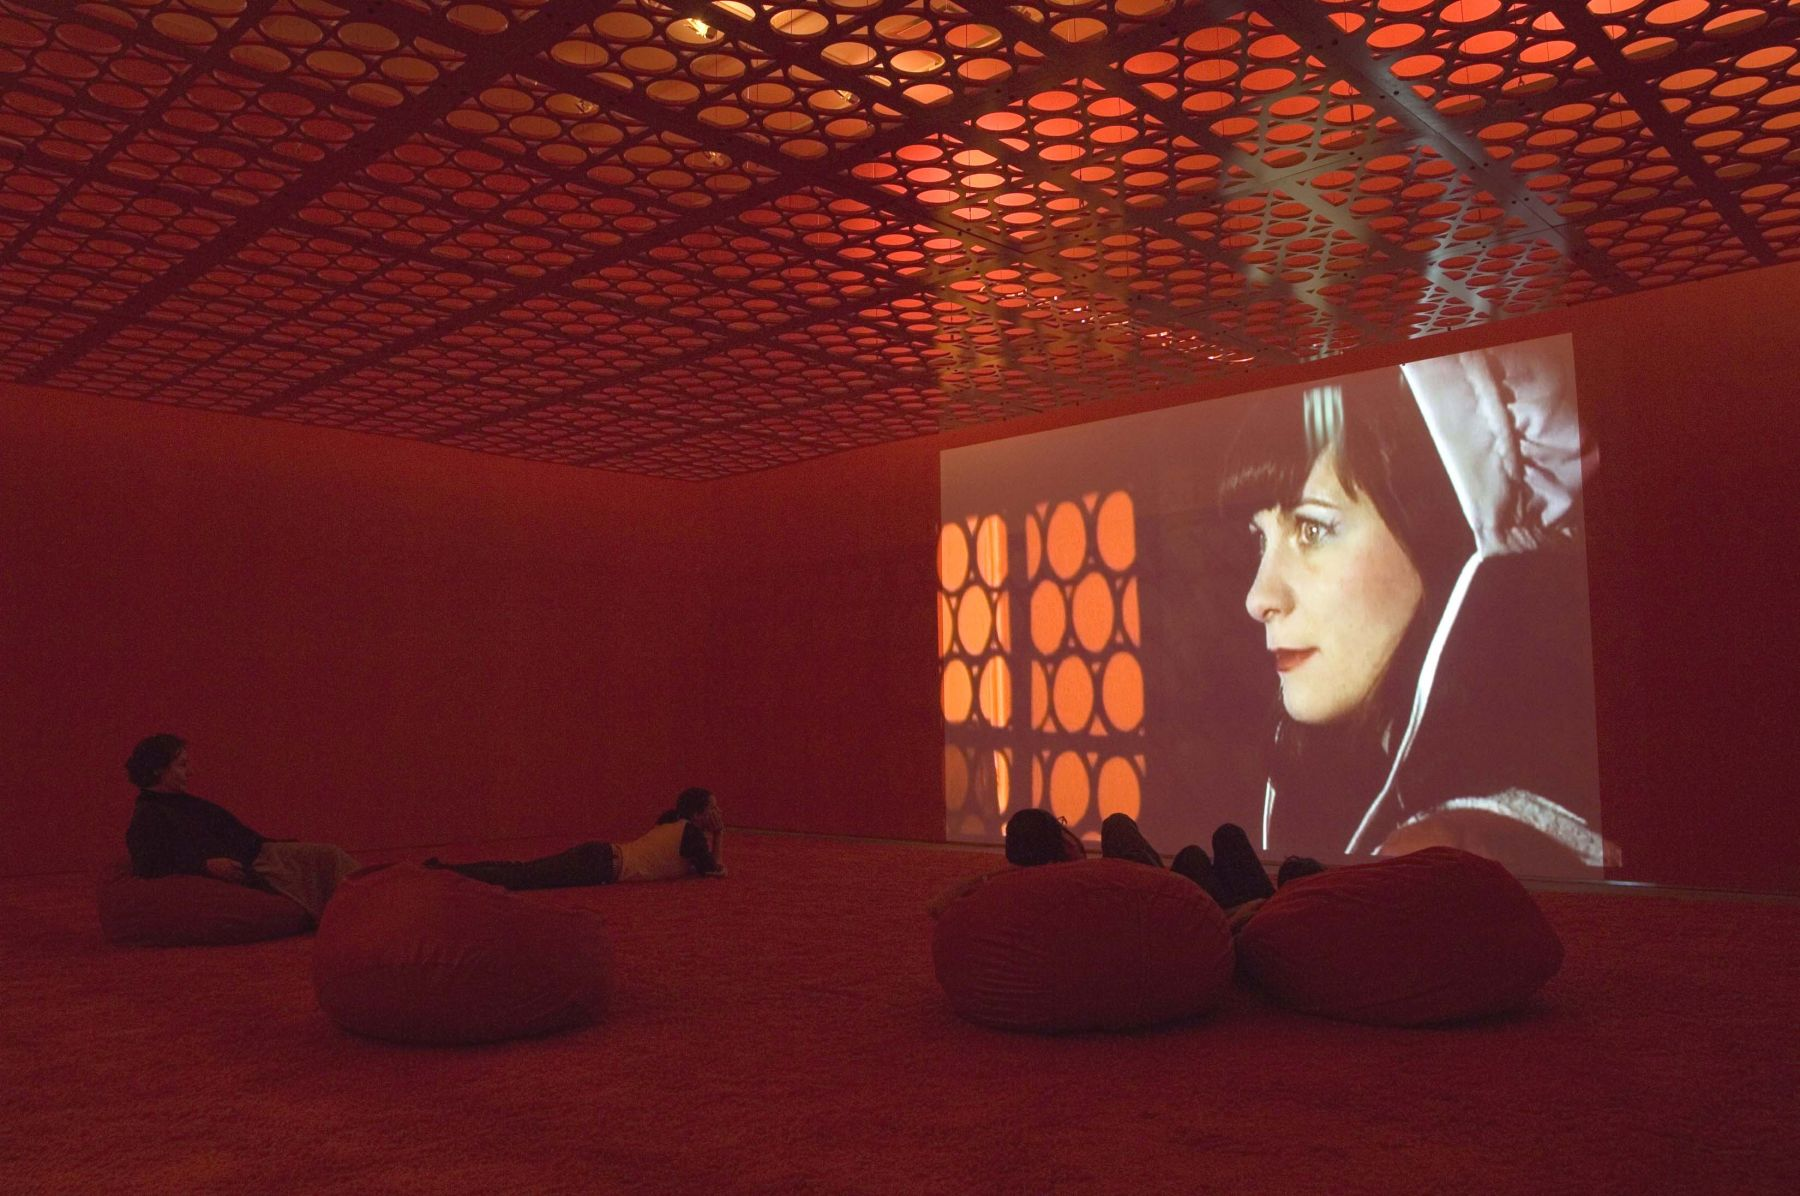 a film installation by sue de beer in a contemporary art gallery space in new york